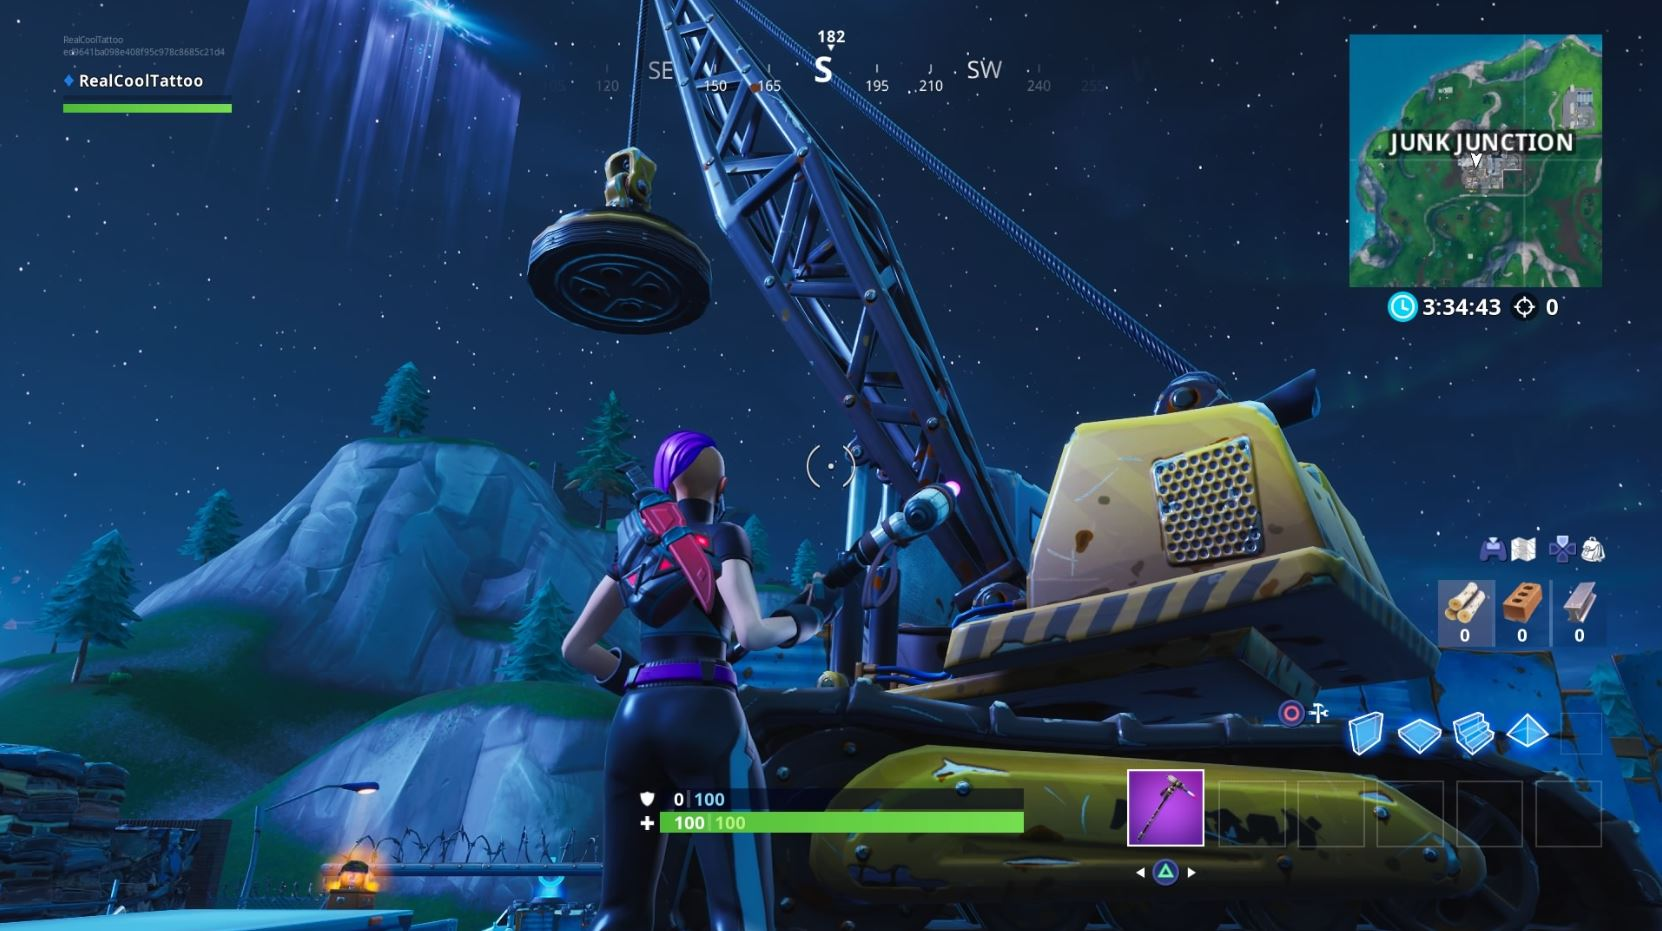 , Fortnite: Spray a fountain, a junkyard crane, and a vending machine locations, AllYourGames.com, AllYourGames.com